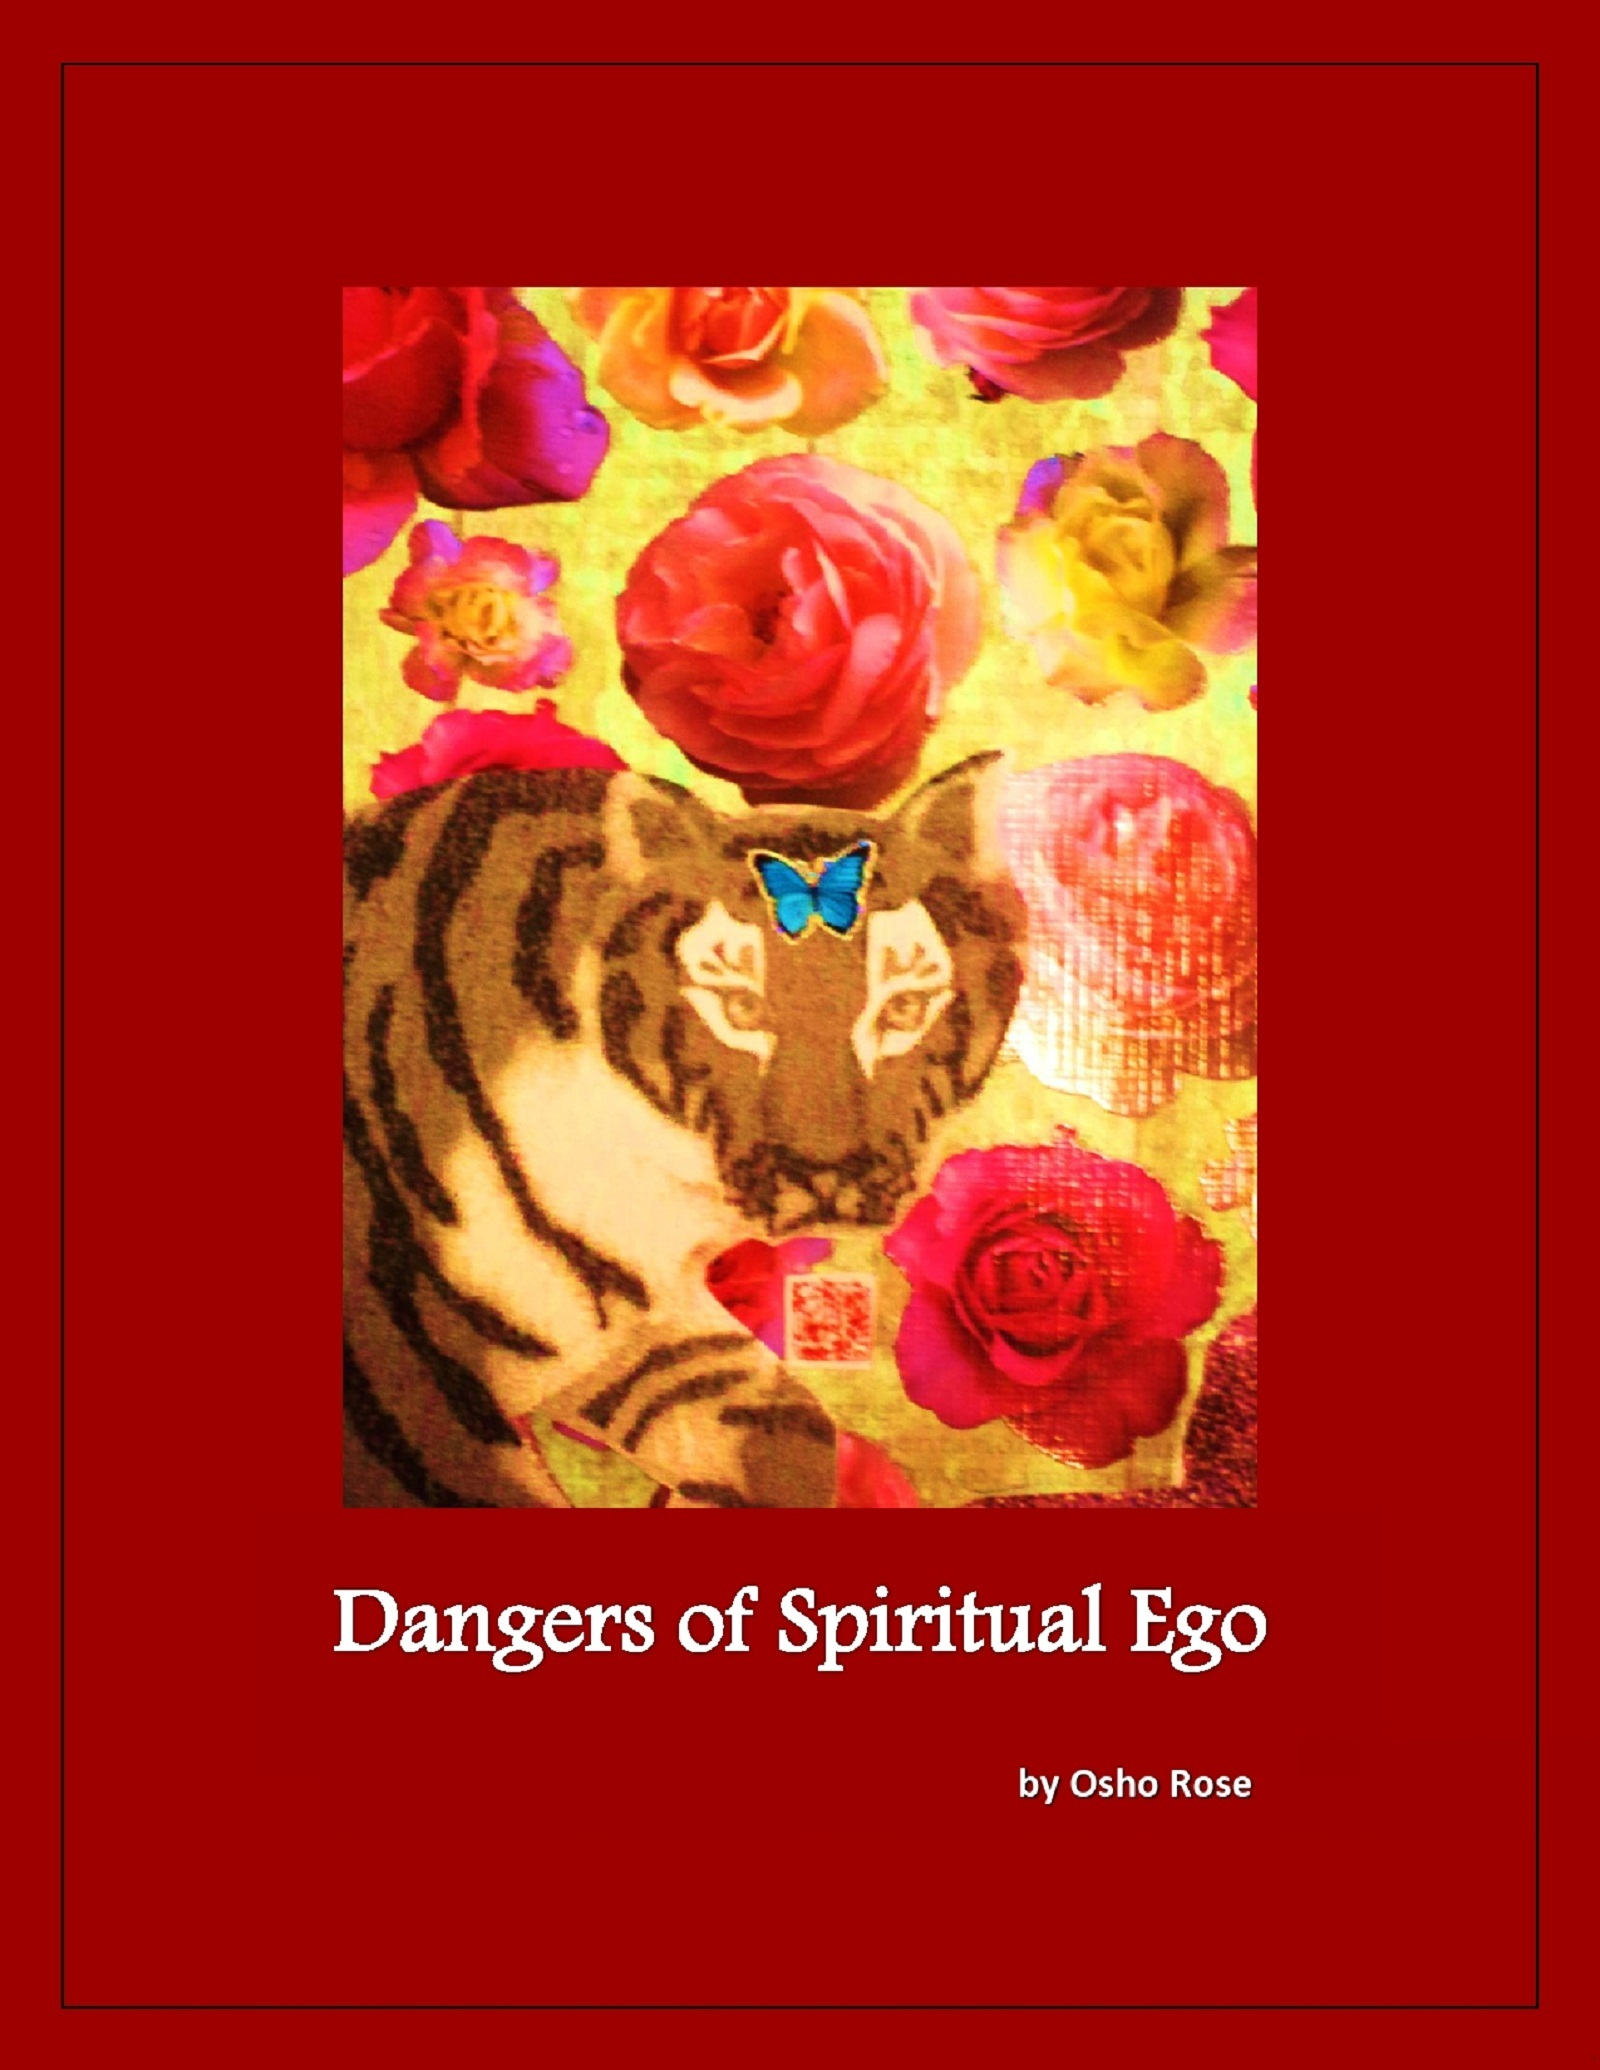 The Dangers of Spiritual Ego